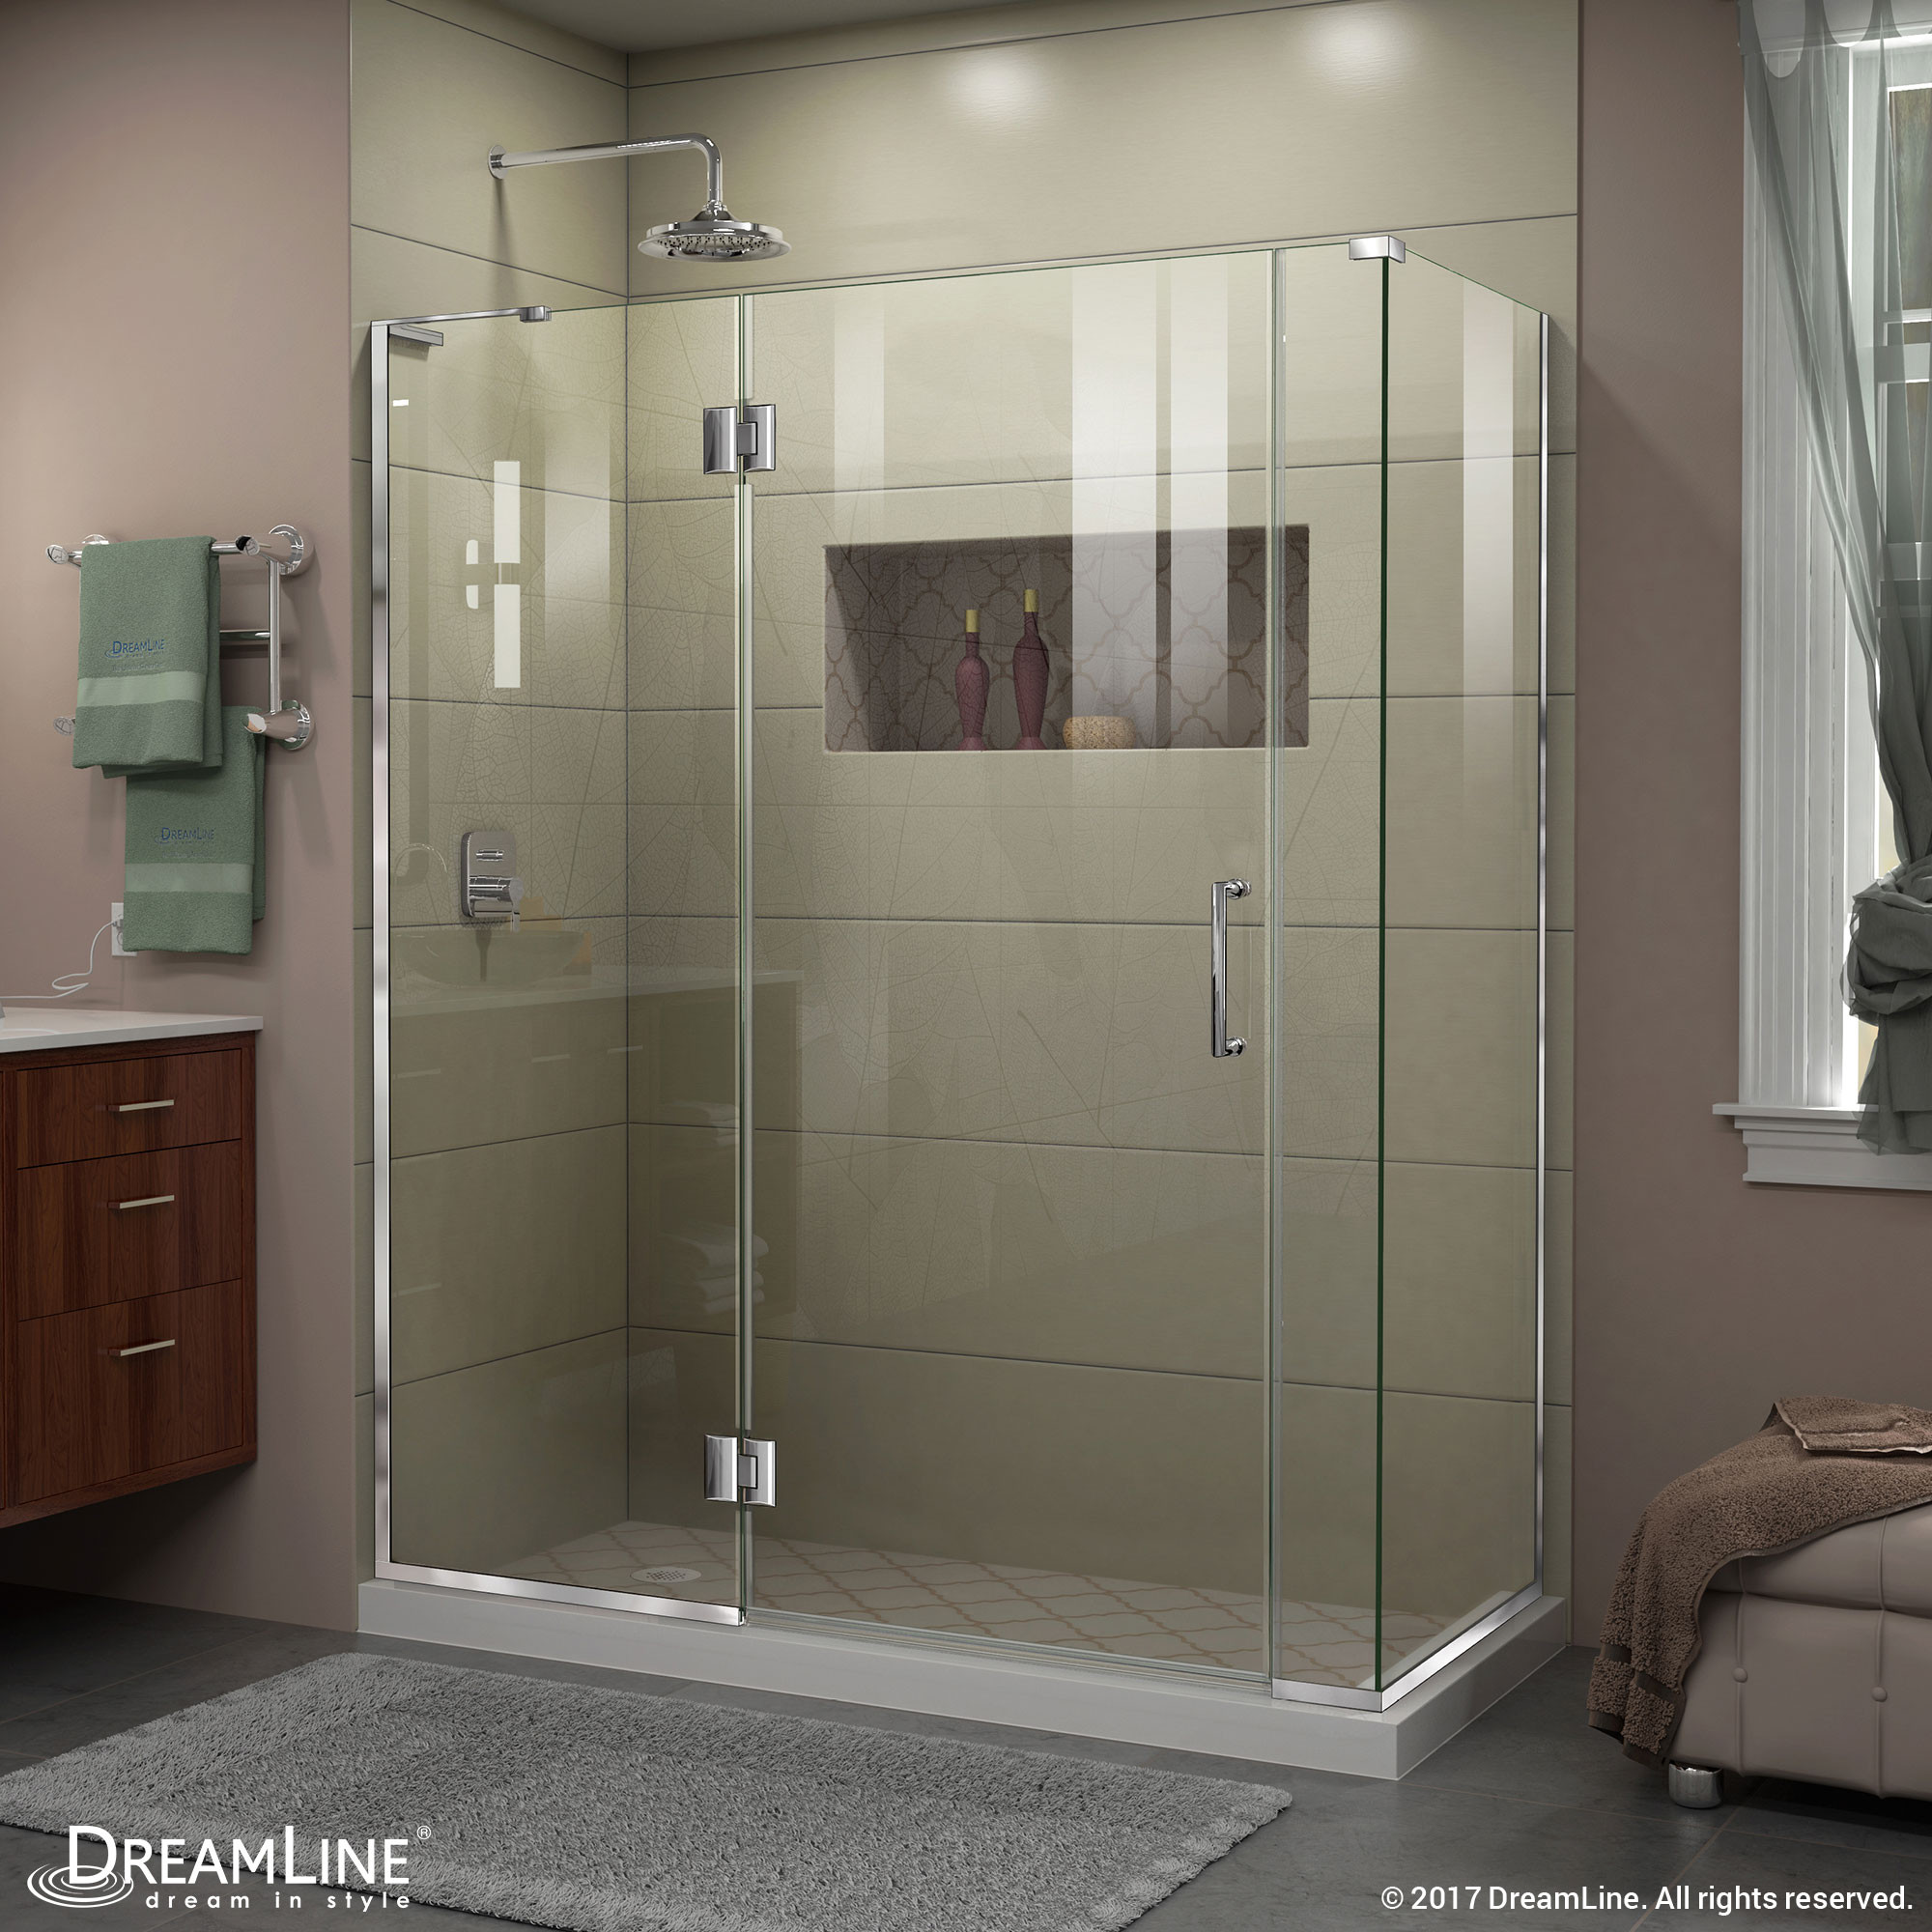 "DreamLine E3300634L-01 Chrome 60 x 34.375 x 72"" Hinged Shower Enclosure With Left-wall Bracket"